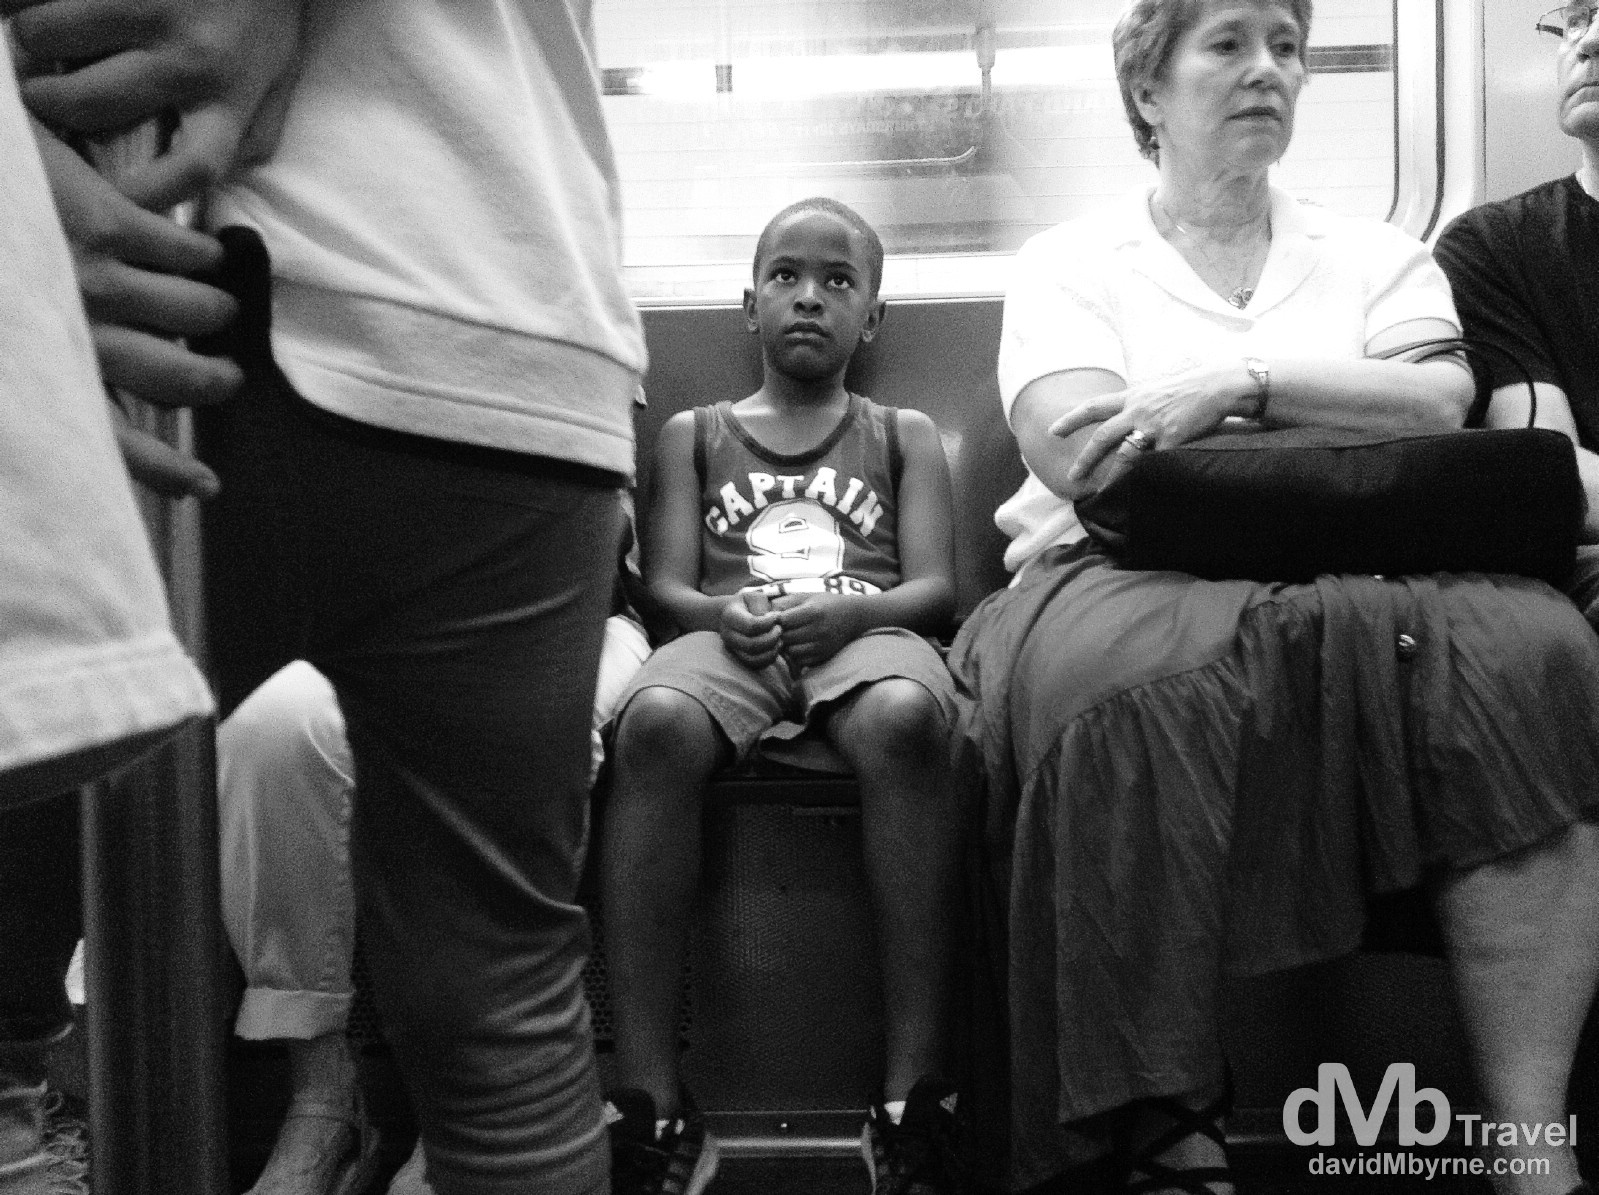 Riding the subway in New York City. July 13th 2013. (iPod)